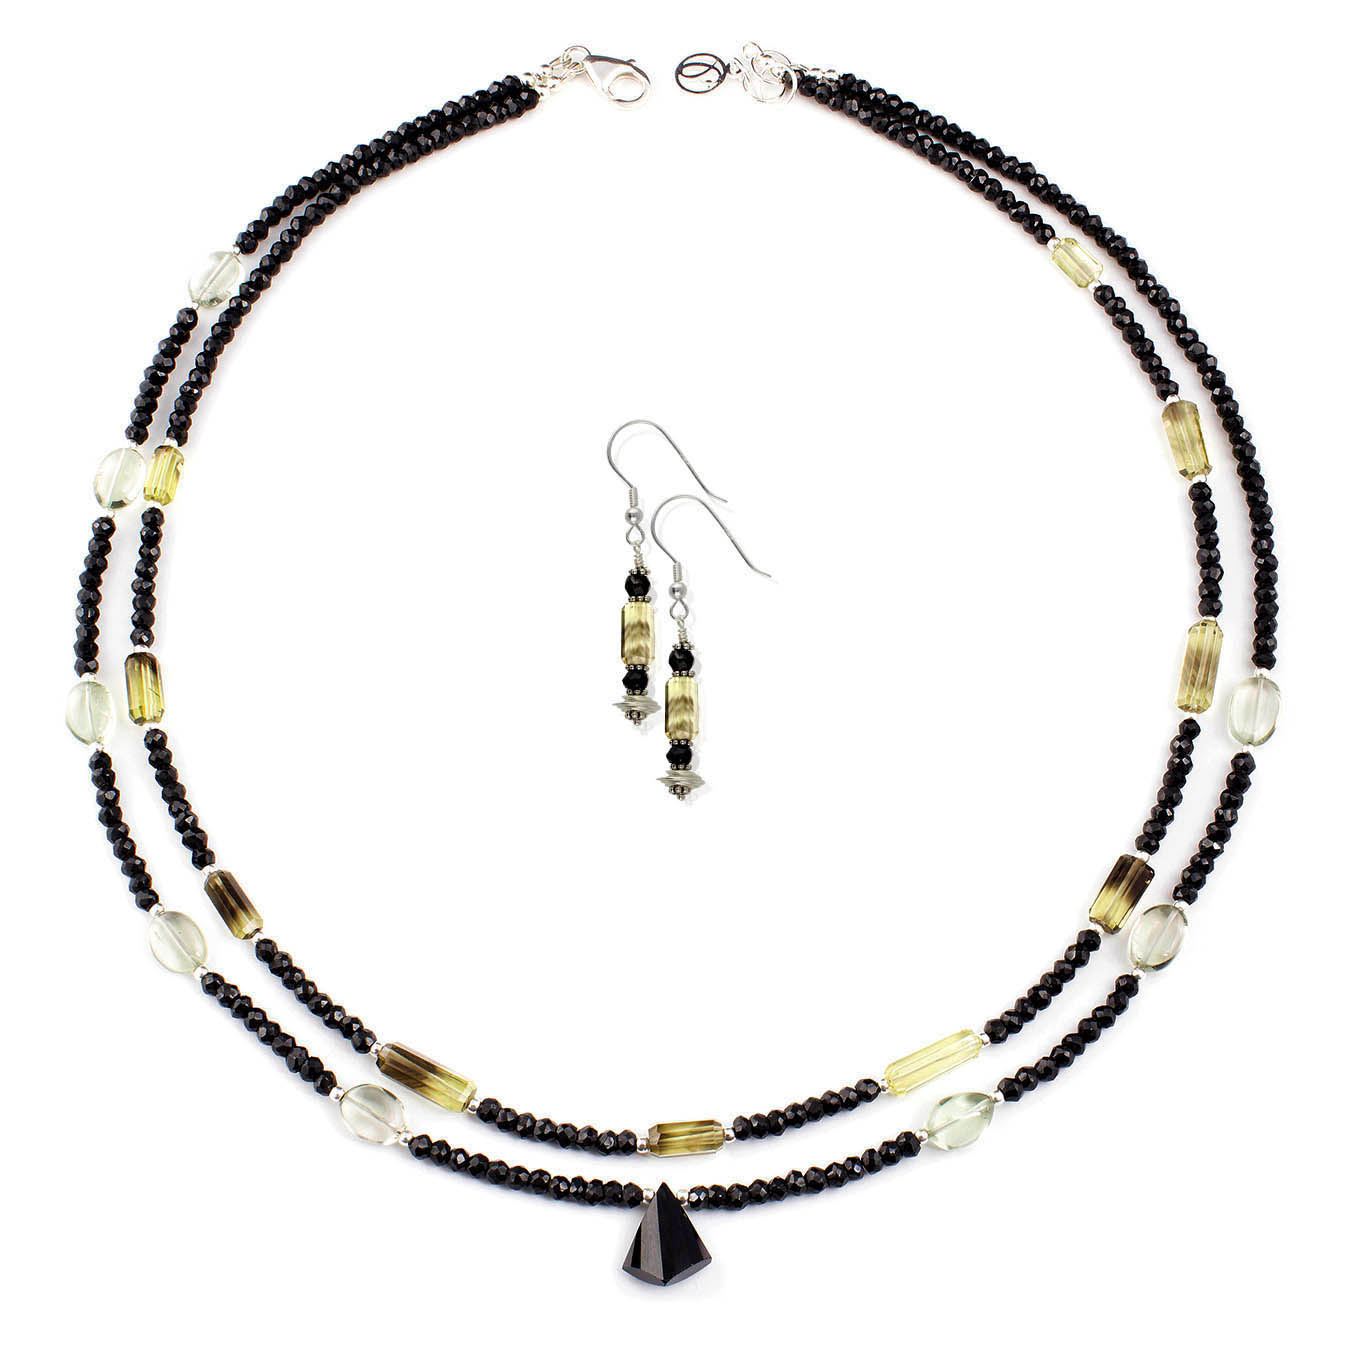 Gemstone handmade necklace made of spinel, quartz and green amethyst